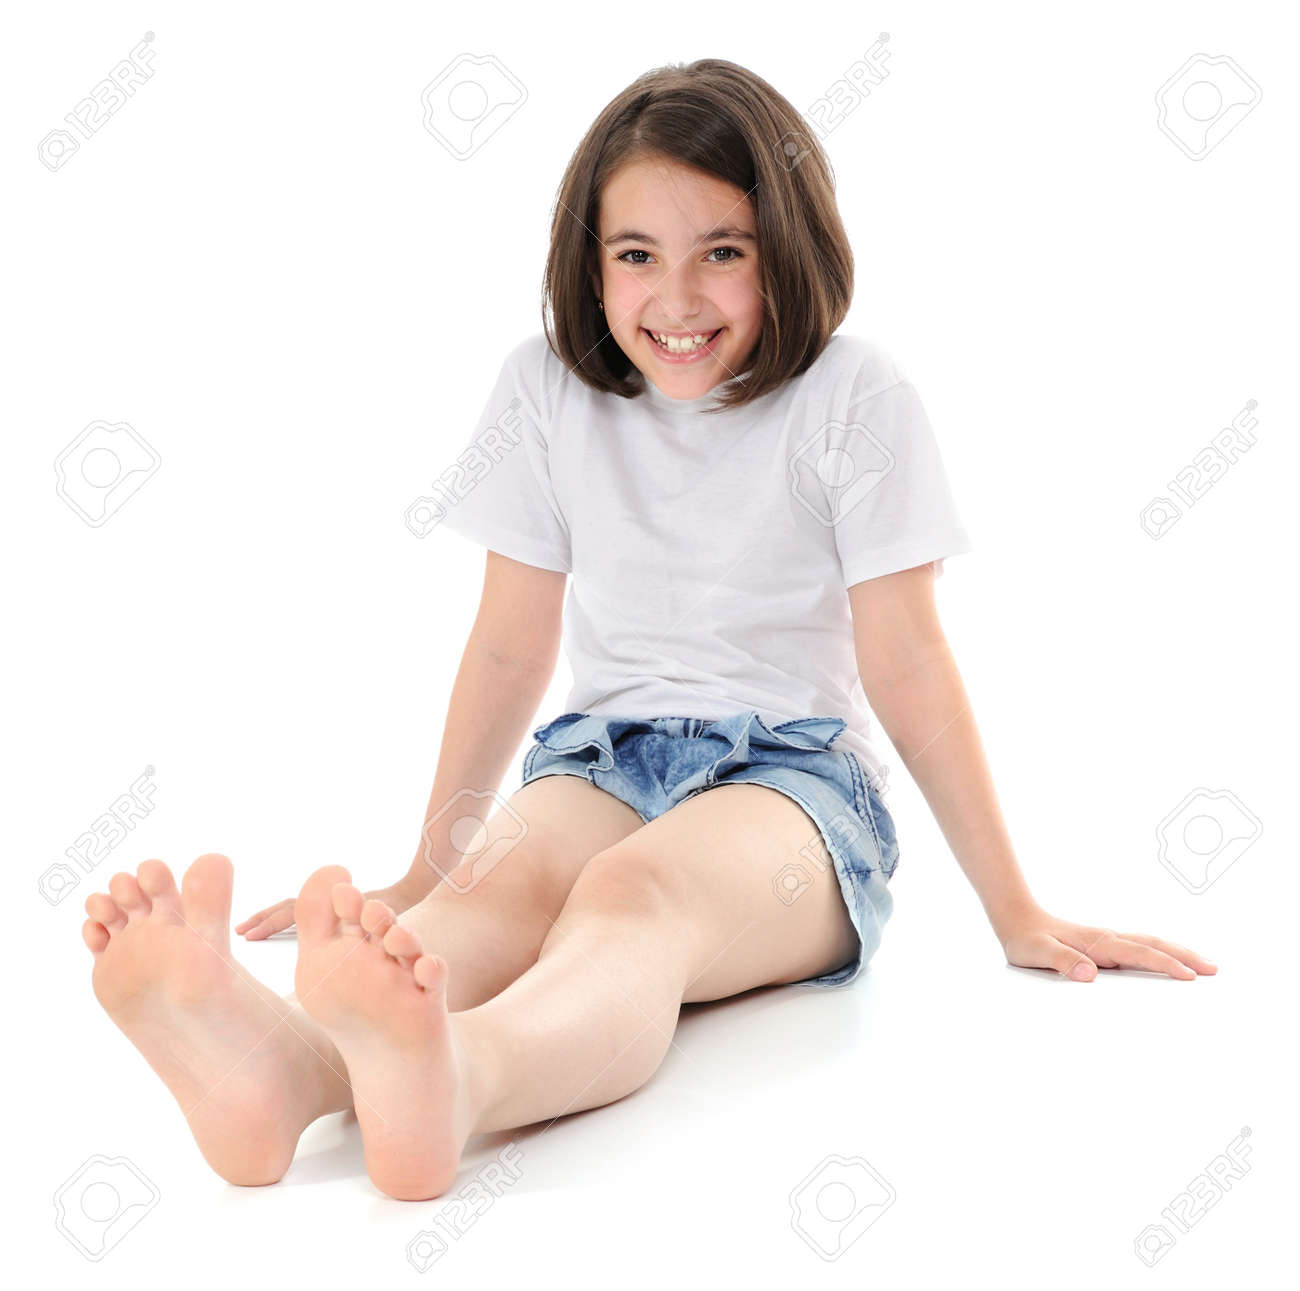 smiling girl sitting on a floor looking at camera stock photo